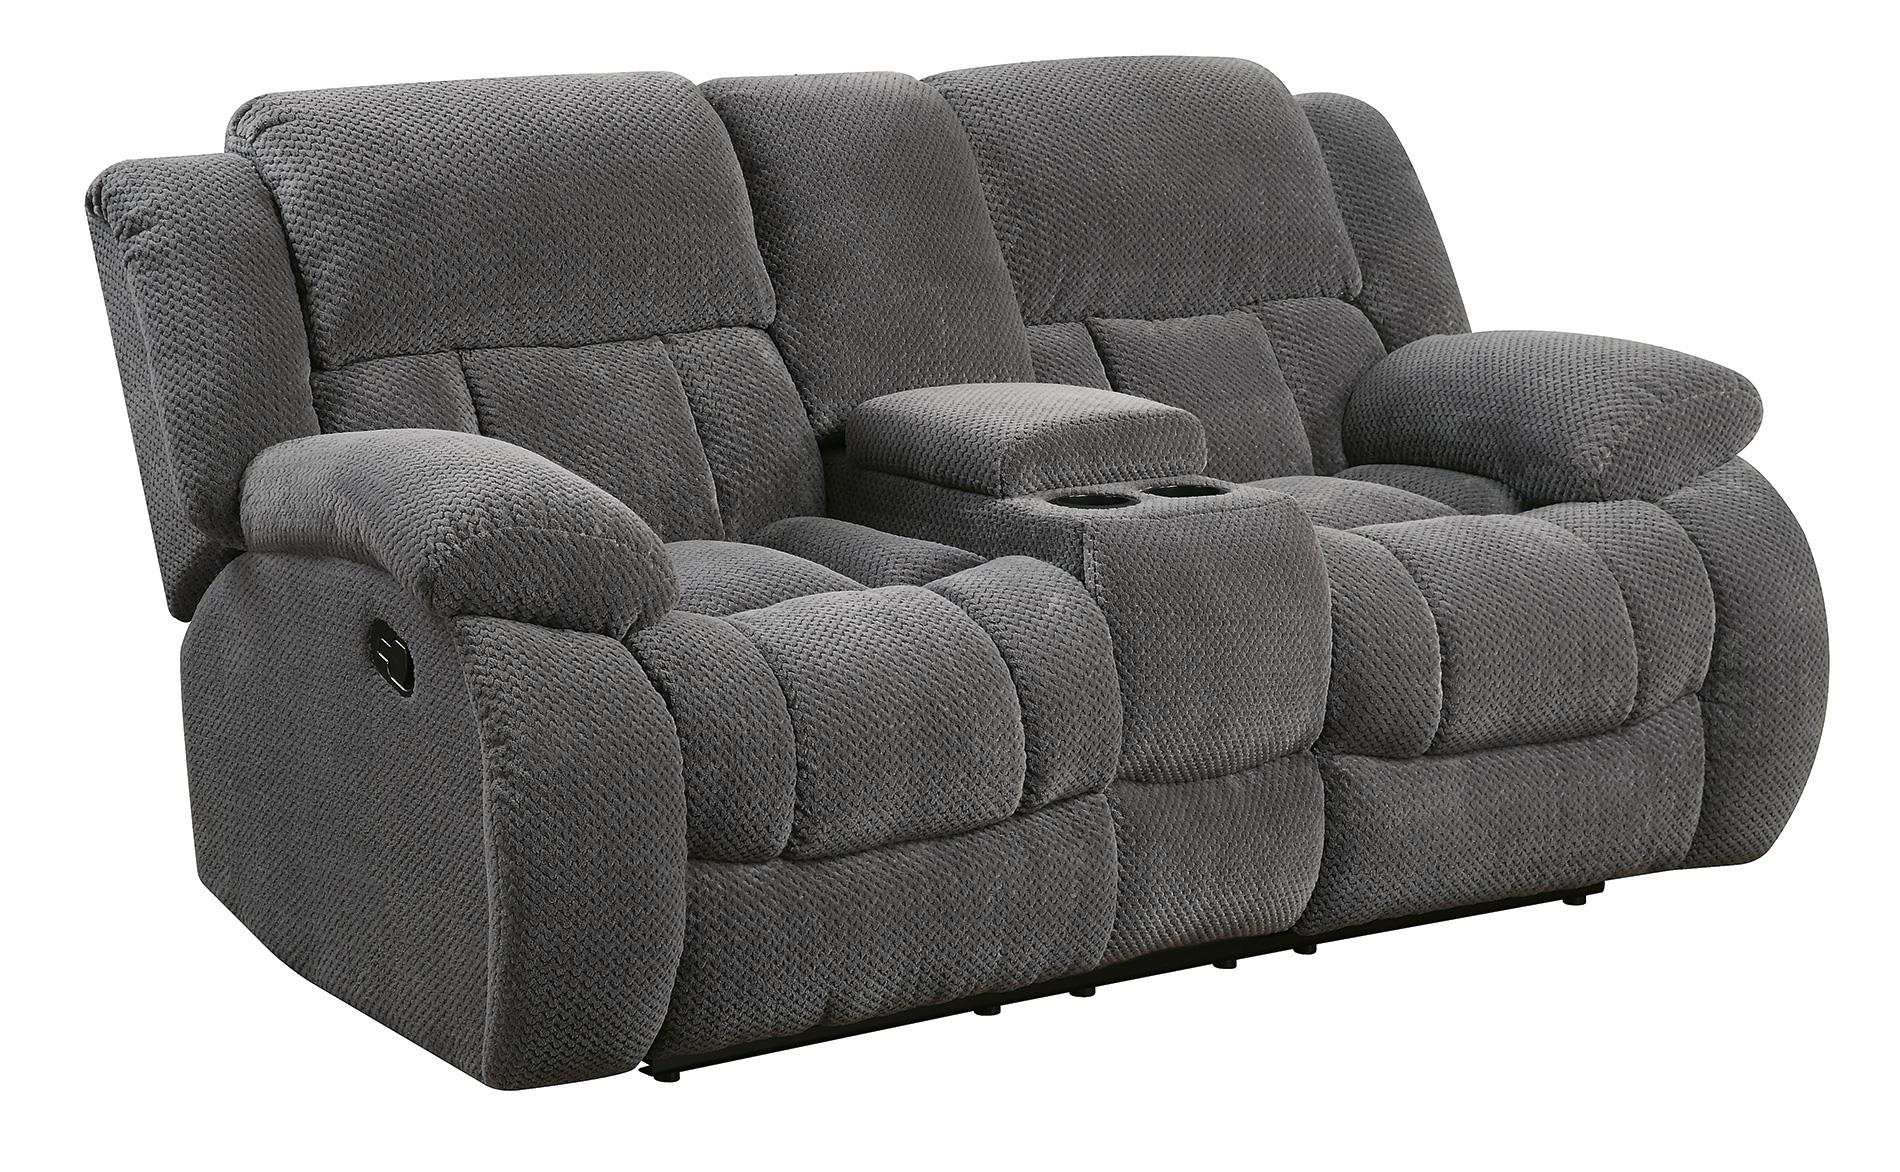 Coaster Weissman 601922 Motion Loveseat Northeast